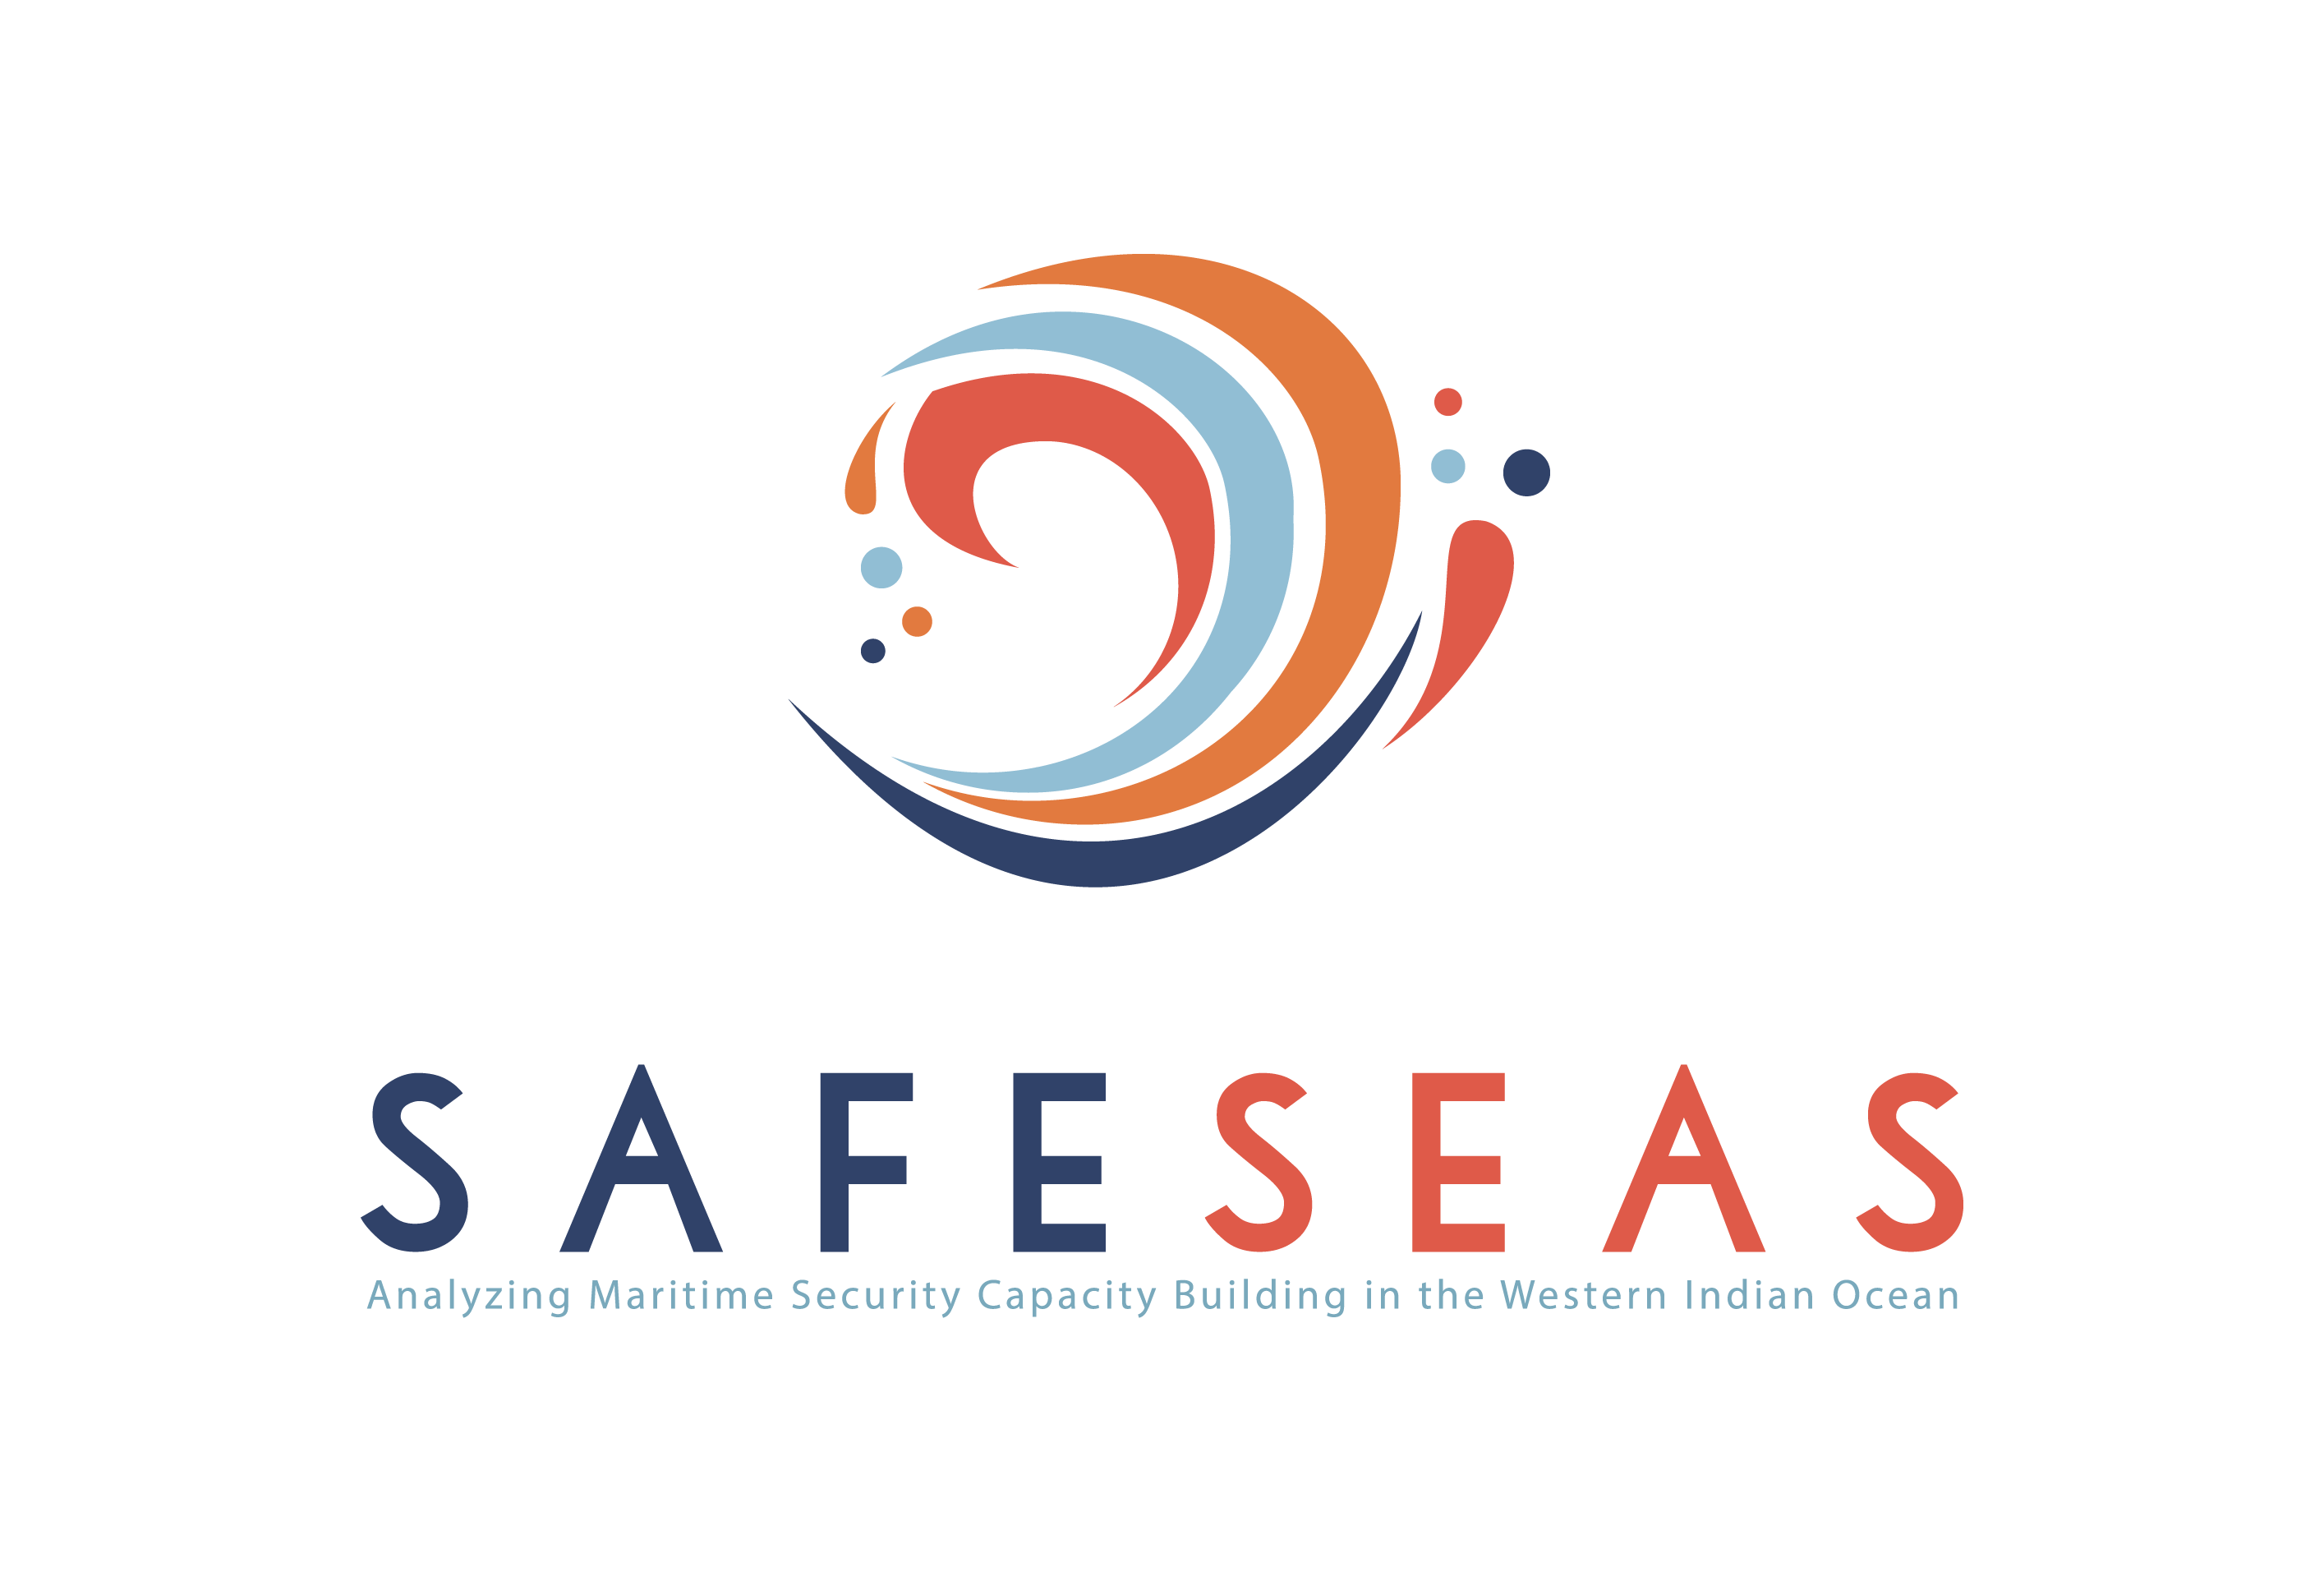 SAFESEAS